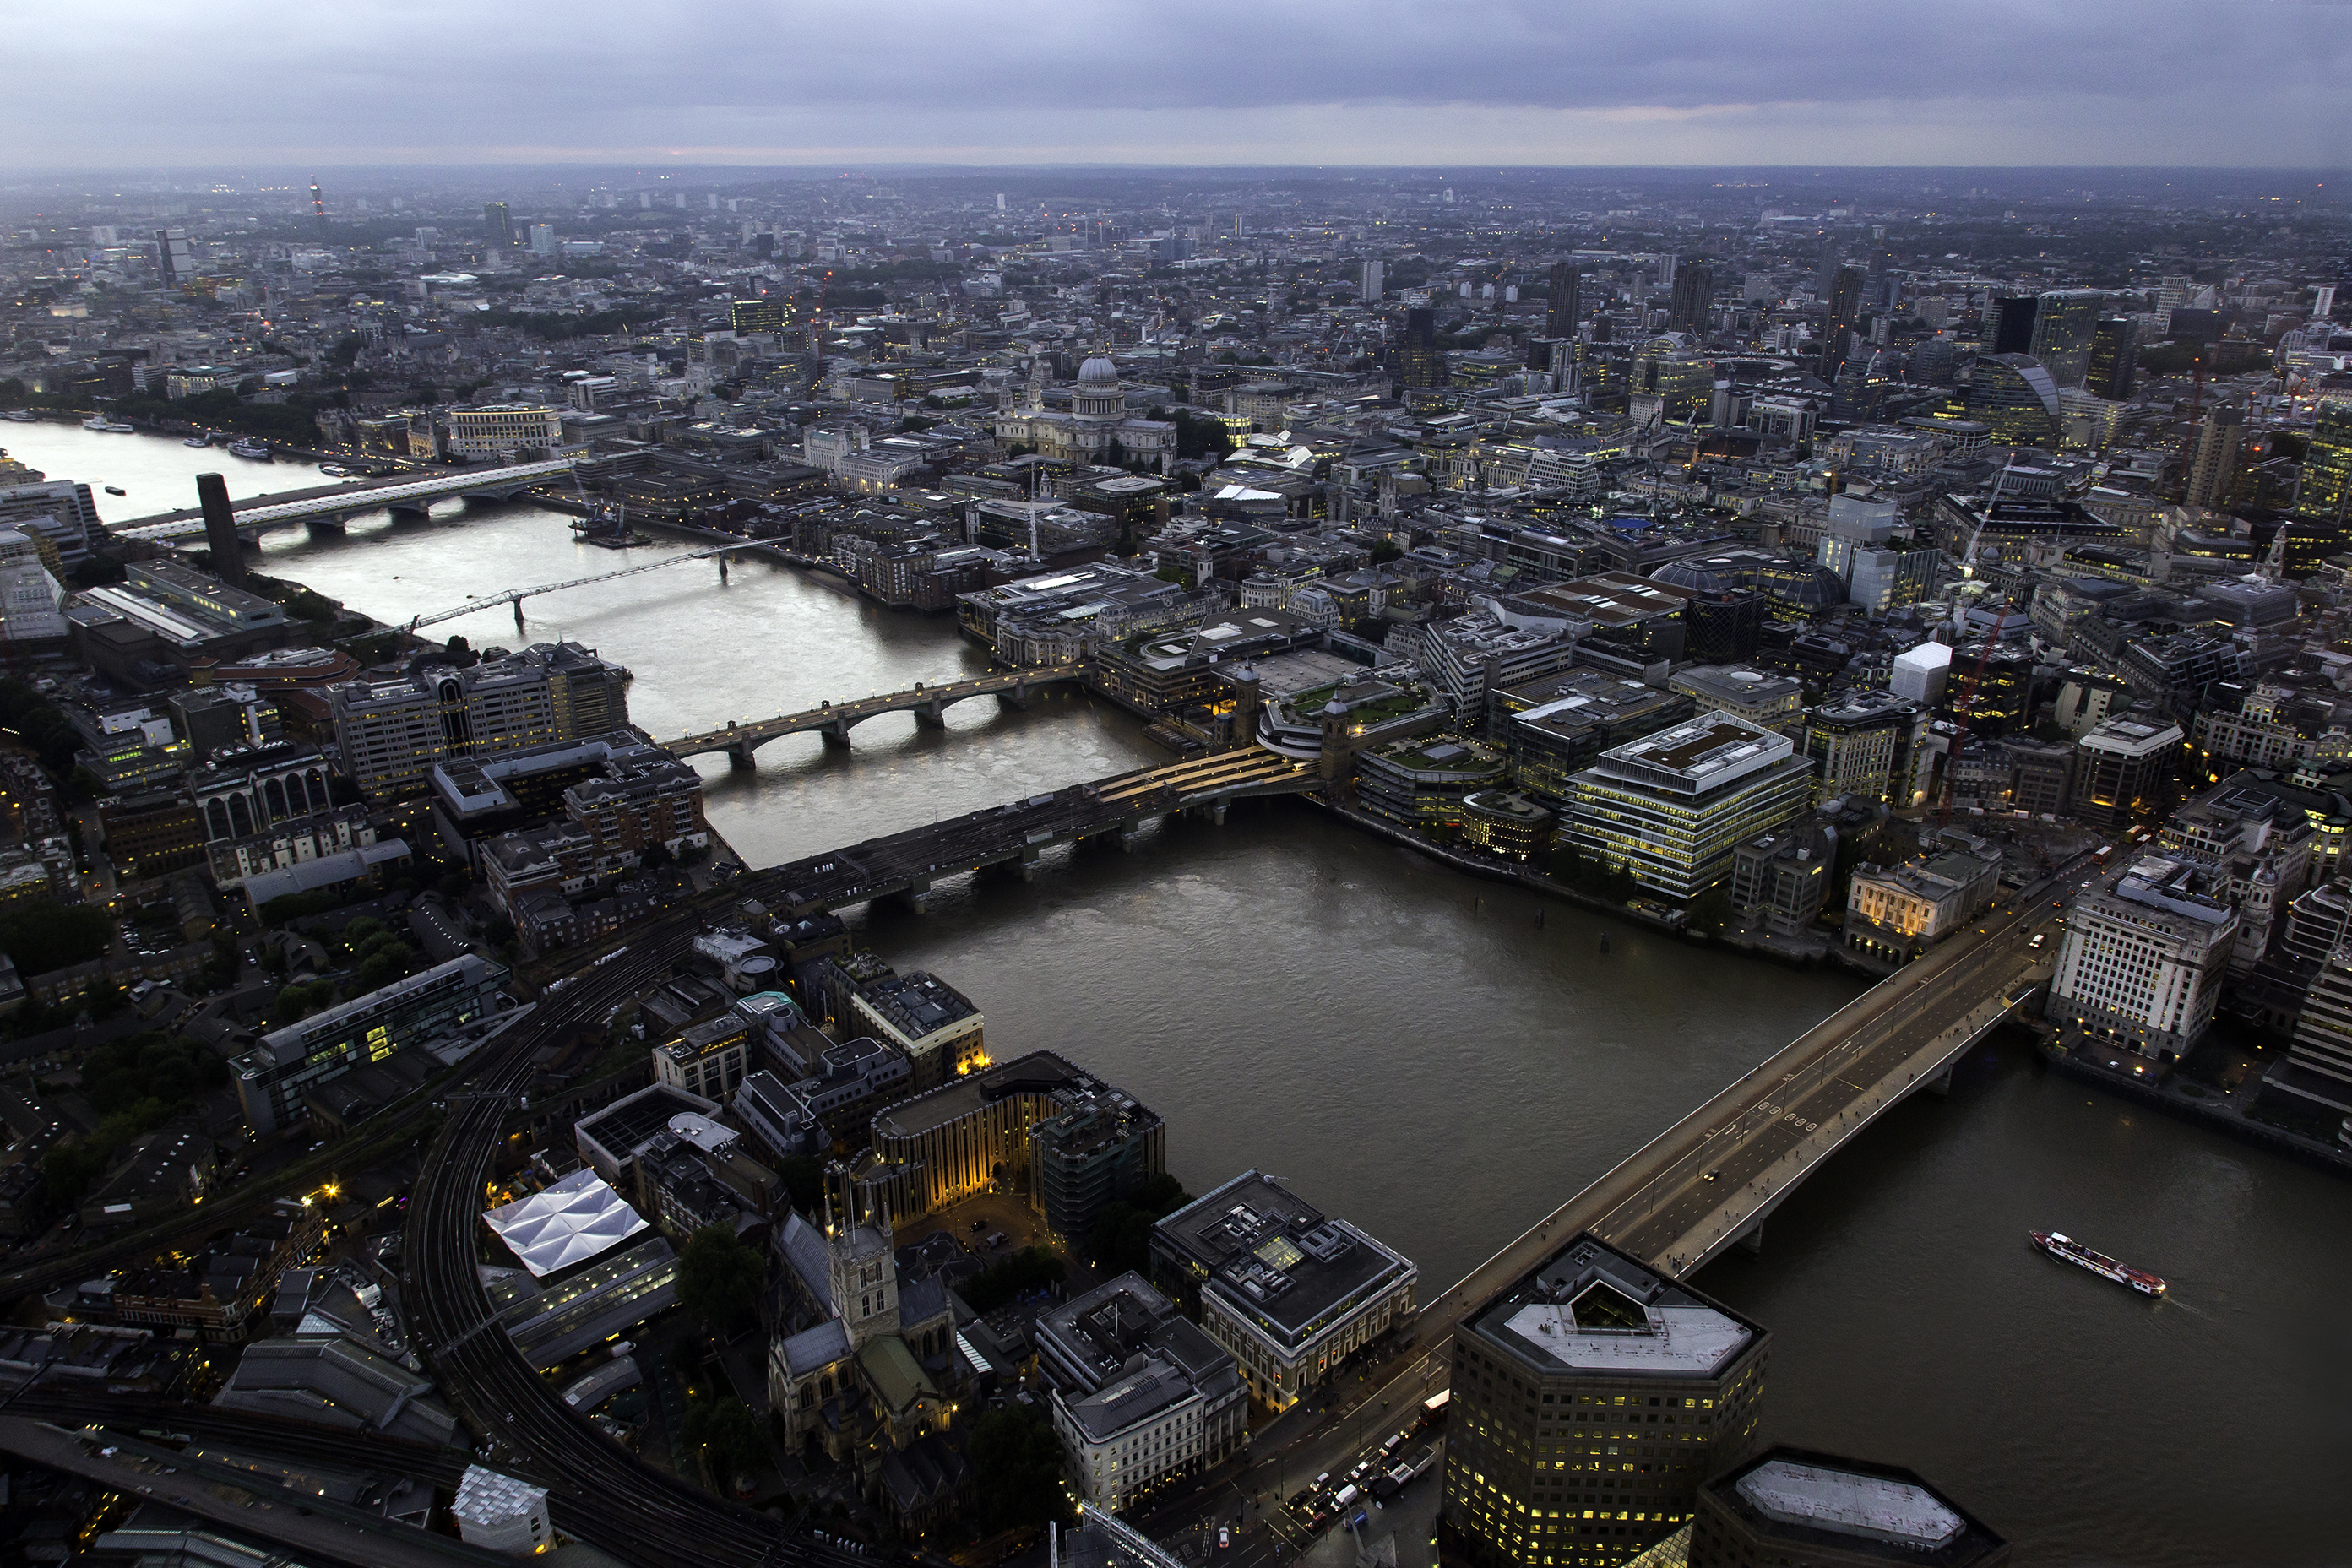 1 From left to right London Bridge, Cannon Street Railway Bridge, Southwark Bridge, Millennium Bridge, Blackfriars Bridge and Blackfriars Railway Bridge (all taken from the Shard)